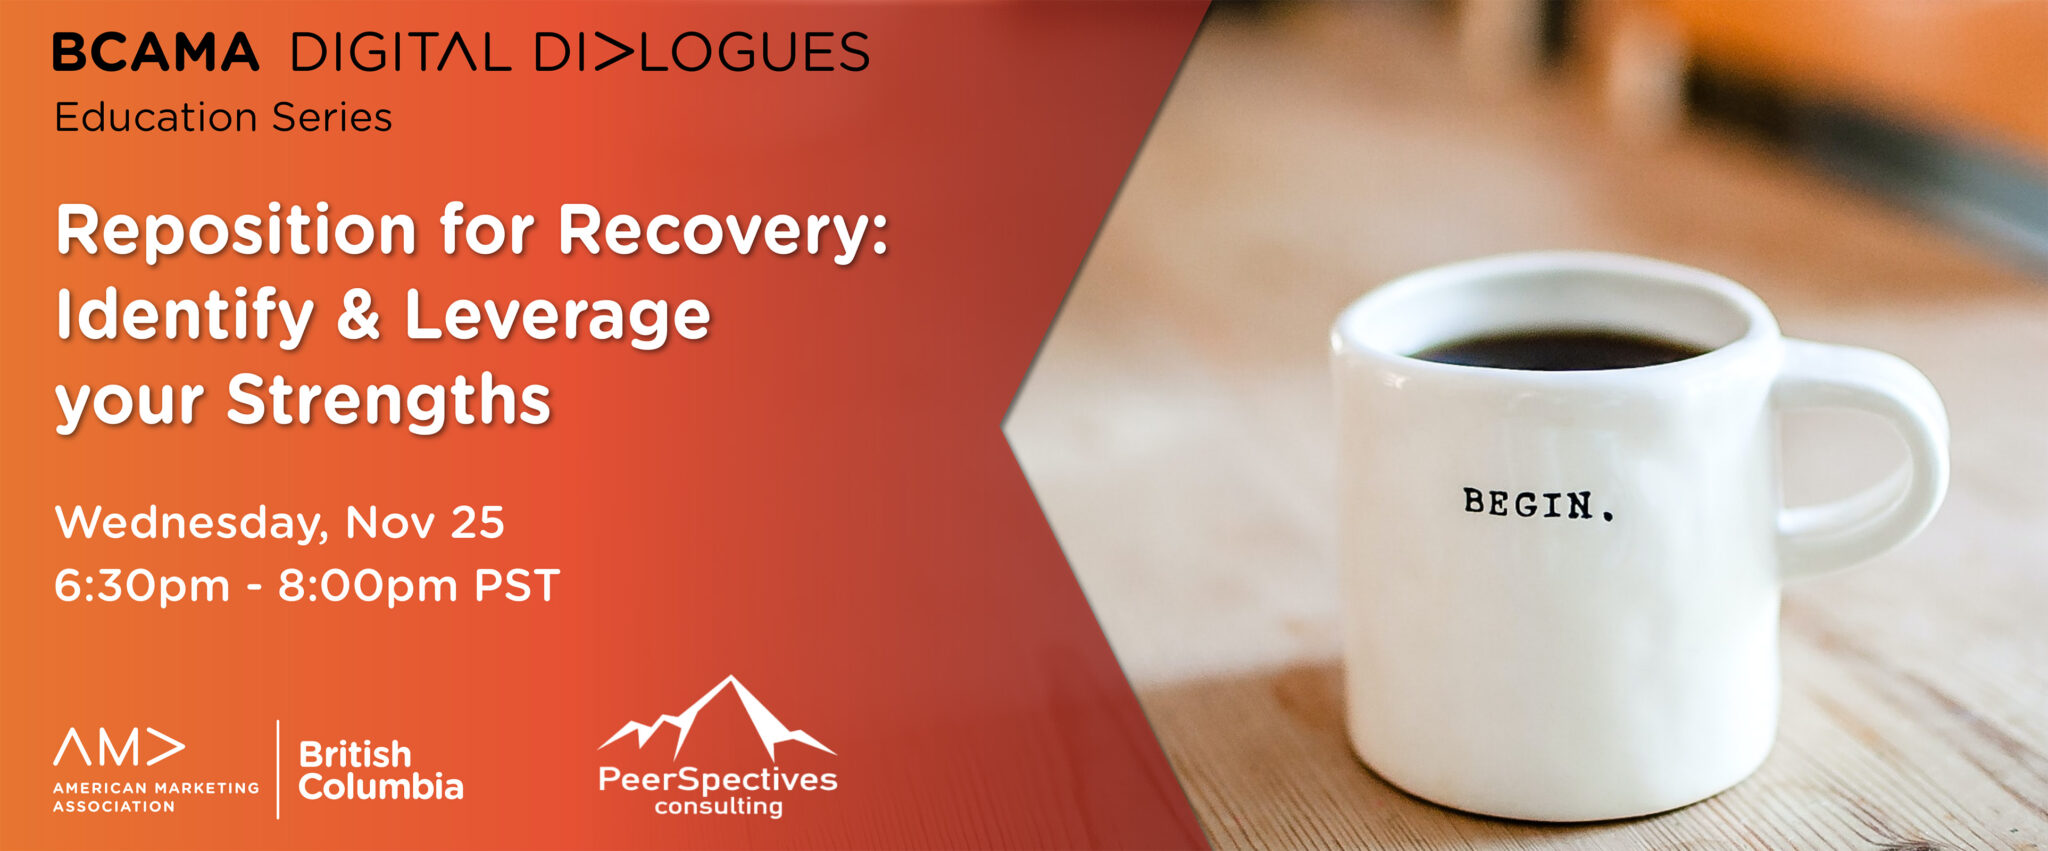 Reposition for Recovery: Identify & Leverage Your Strengths